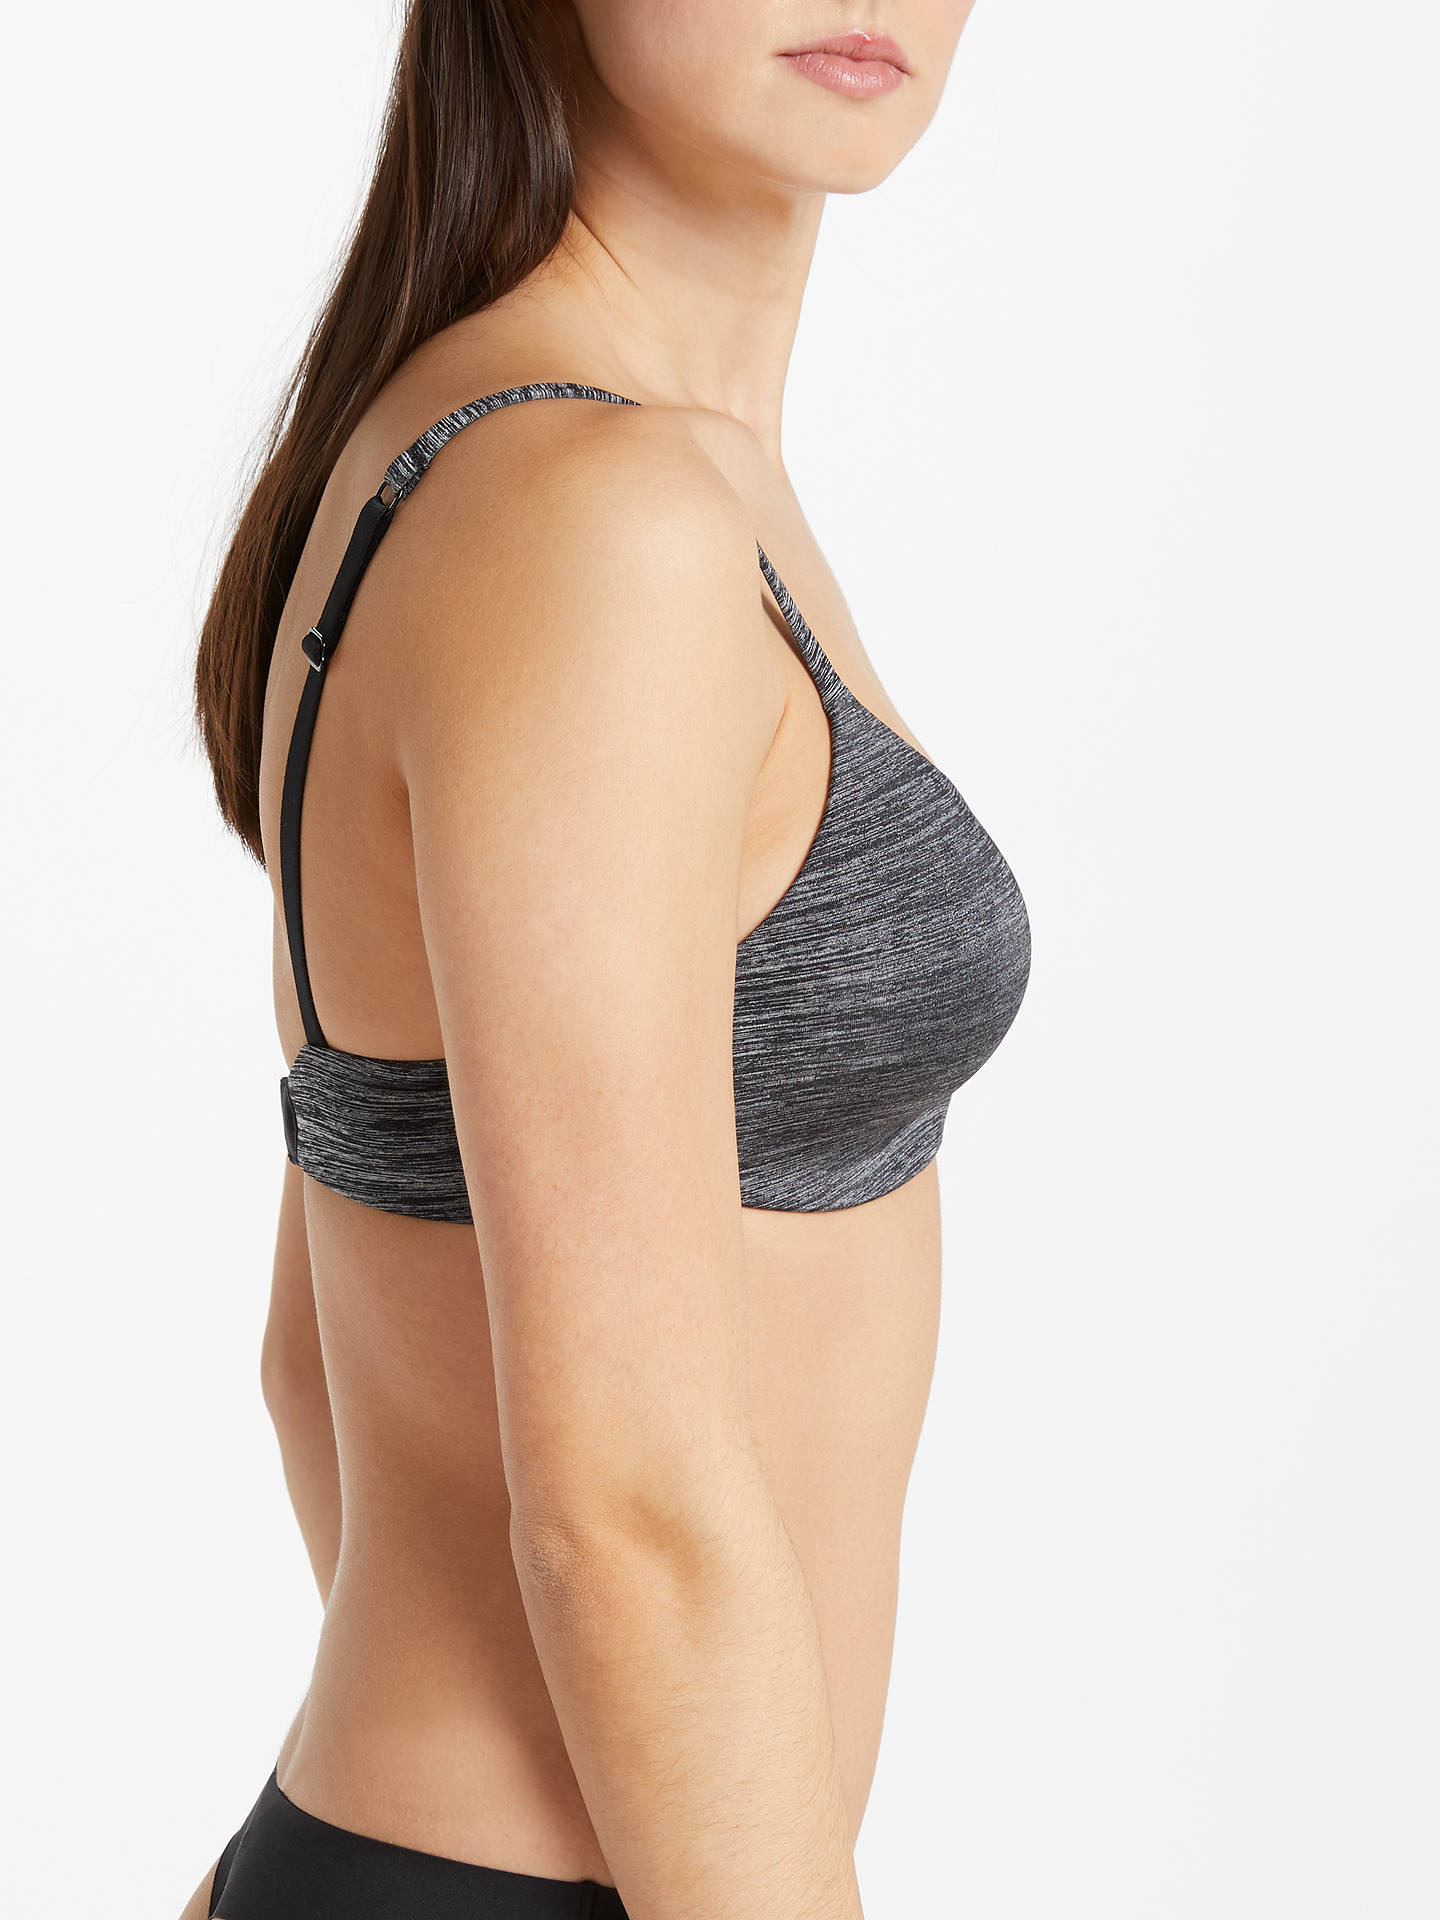 BuyAND/OR Morgan T-Shirt Bra, Black/Grey, 30C Online at johnlewis.com